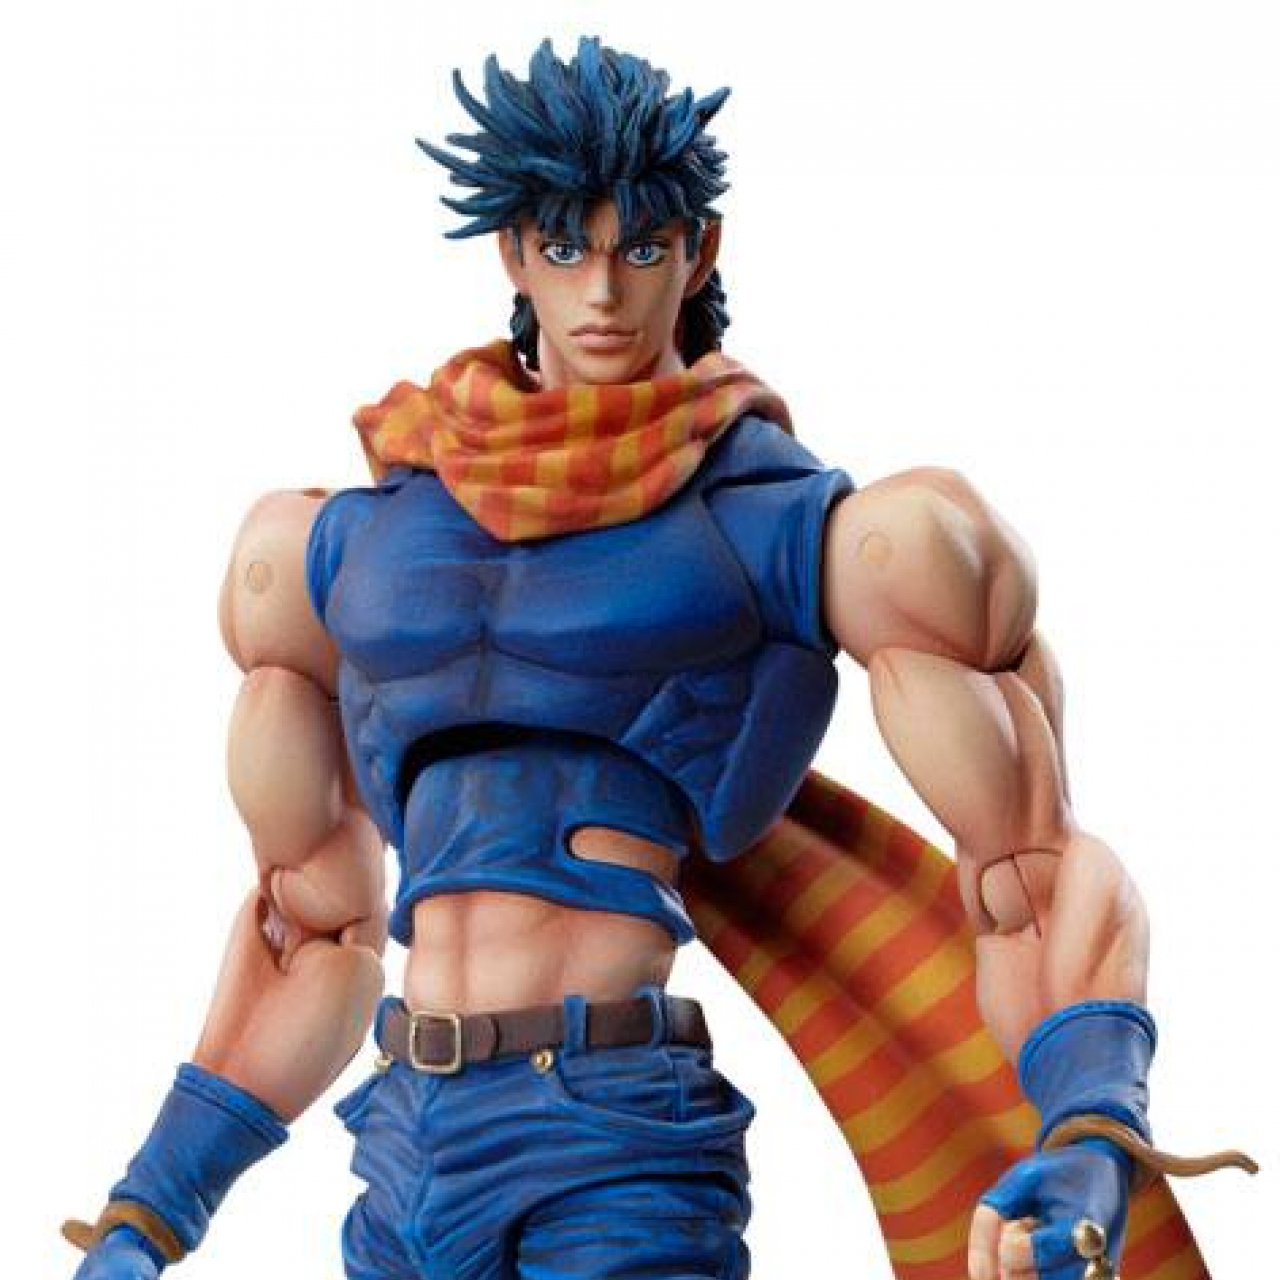 JoJo's Bizarre Adventure Part 2: Battle Tendency Action Figure Chozo Kado (Joseph Joestar) 17 cm